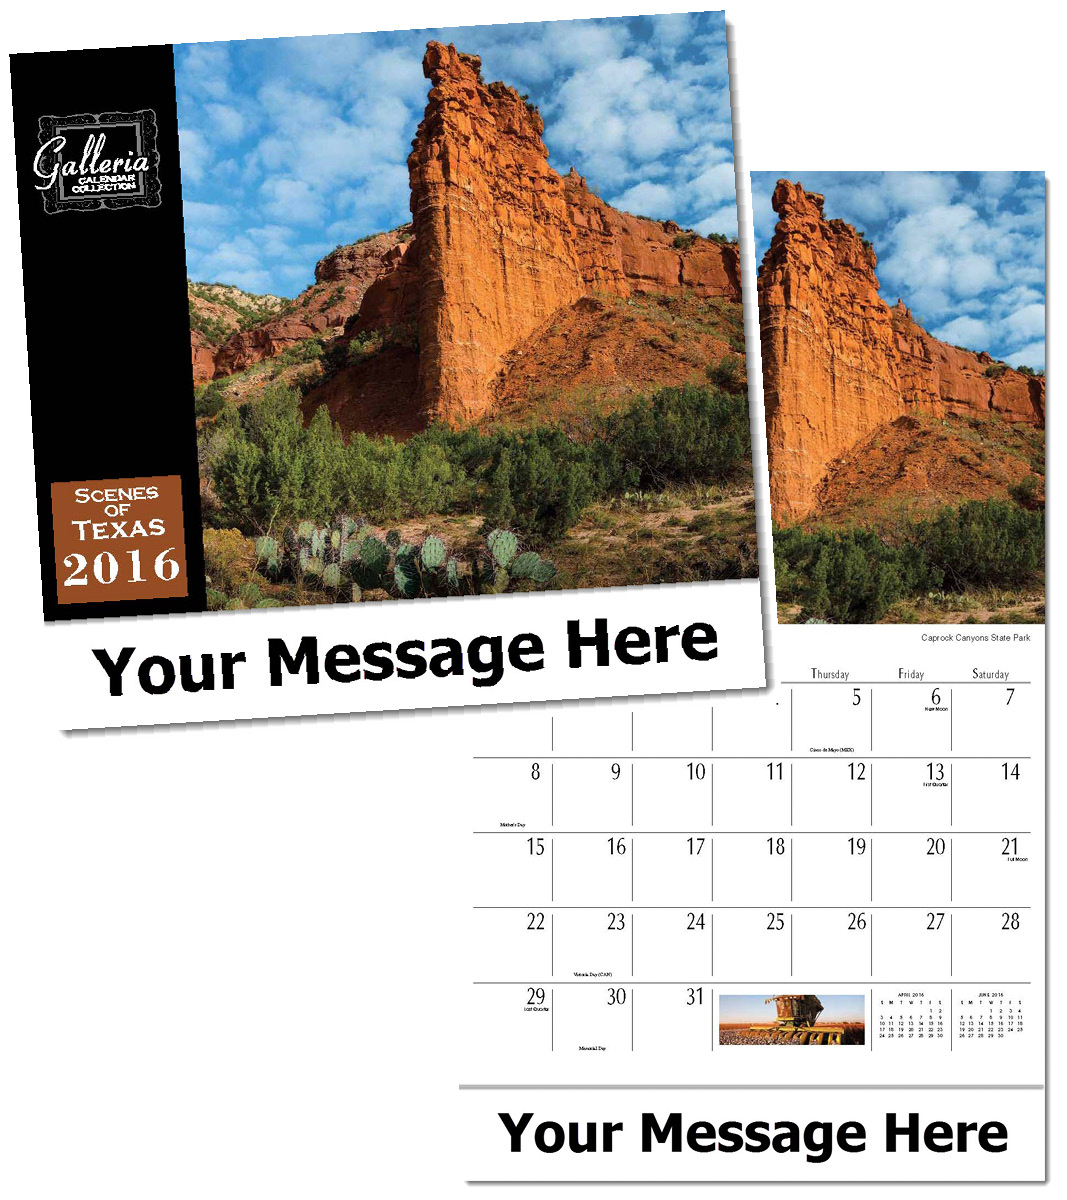 Wholesale Scenes of Texas Calendars, Personalized with Custom Imprint